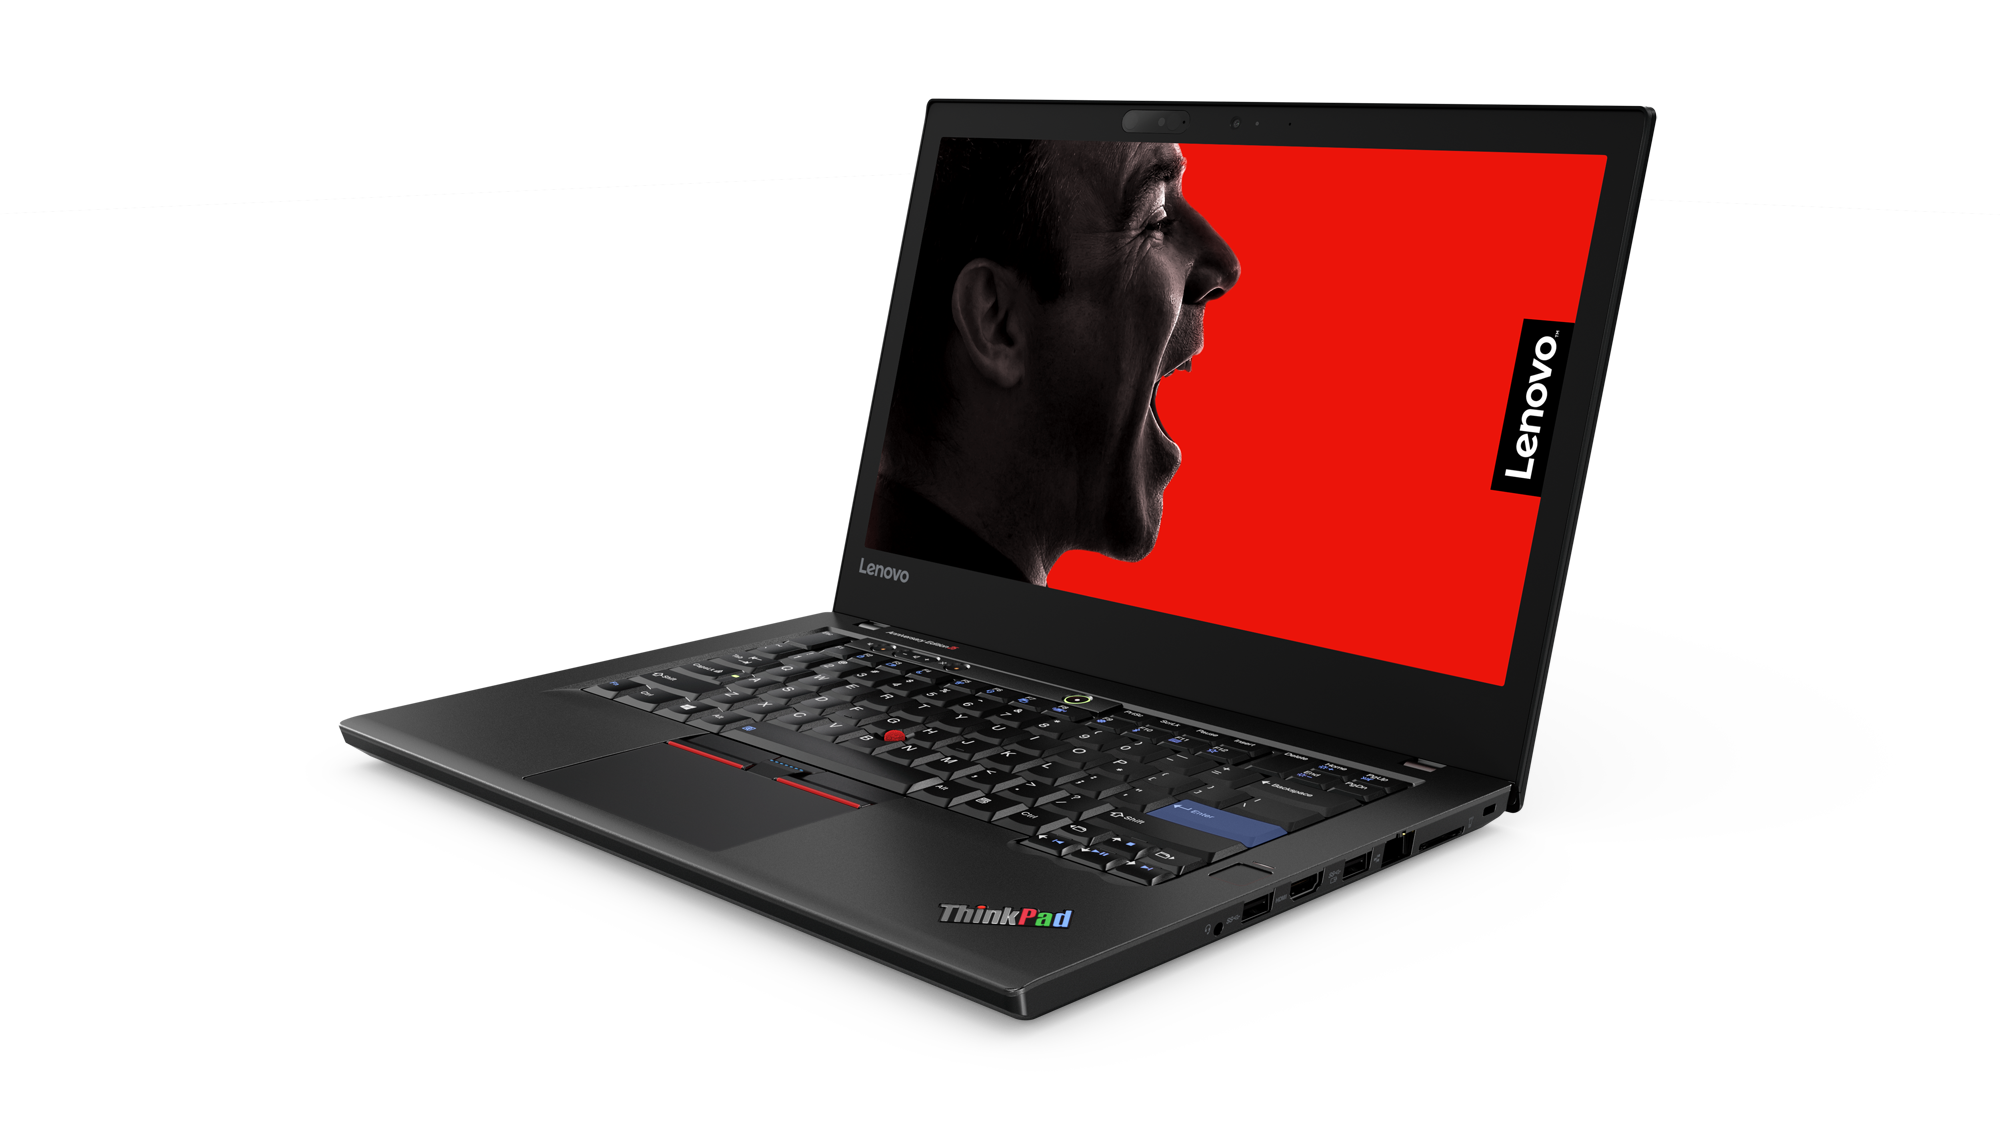 Lenovo Celebrates the ThinkPad with 25 Percent Off Sale